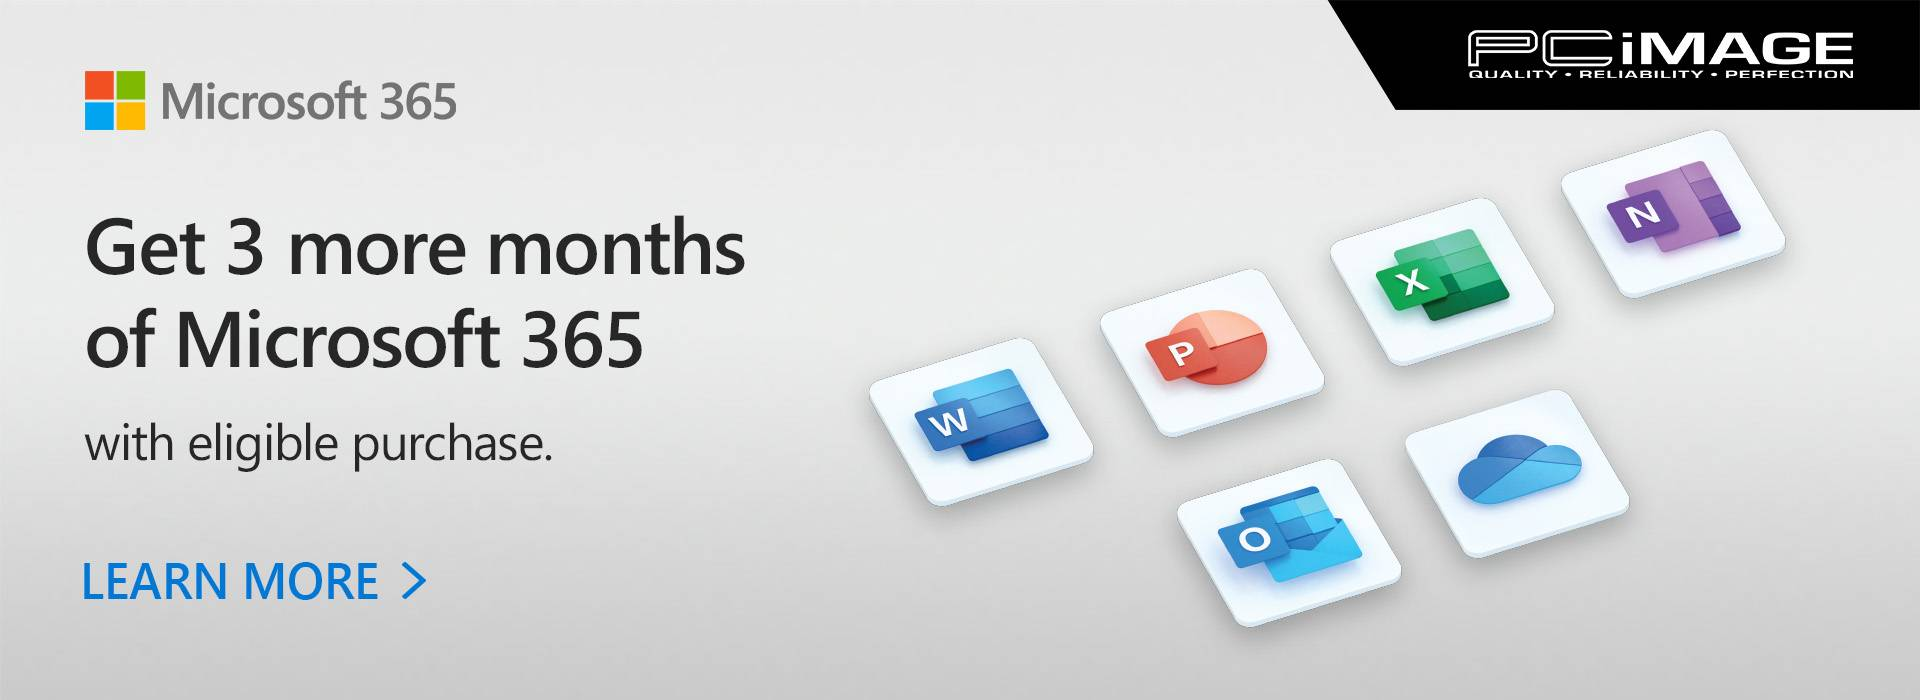 Get 3 more months of Microsoft 365